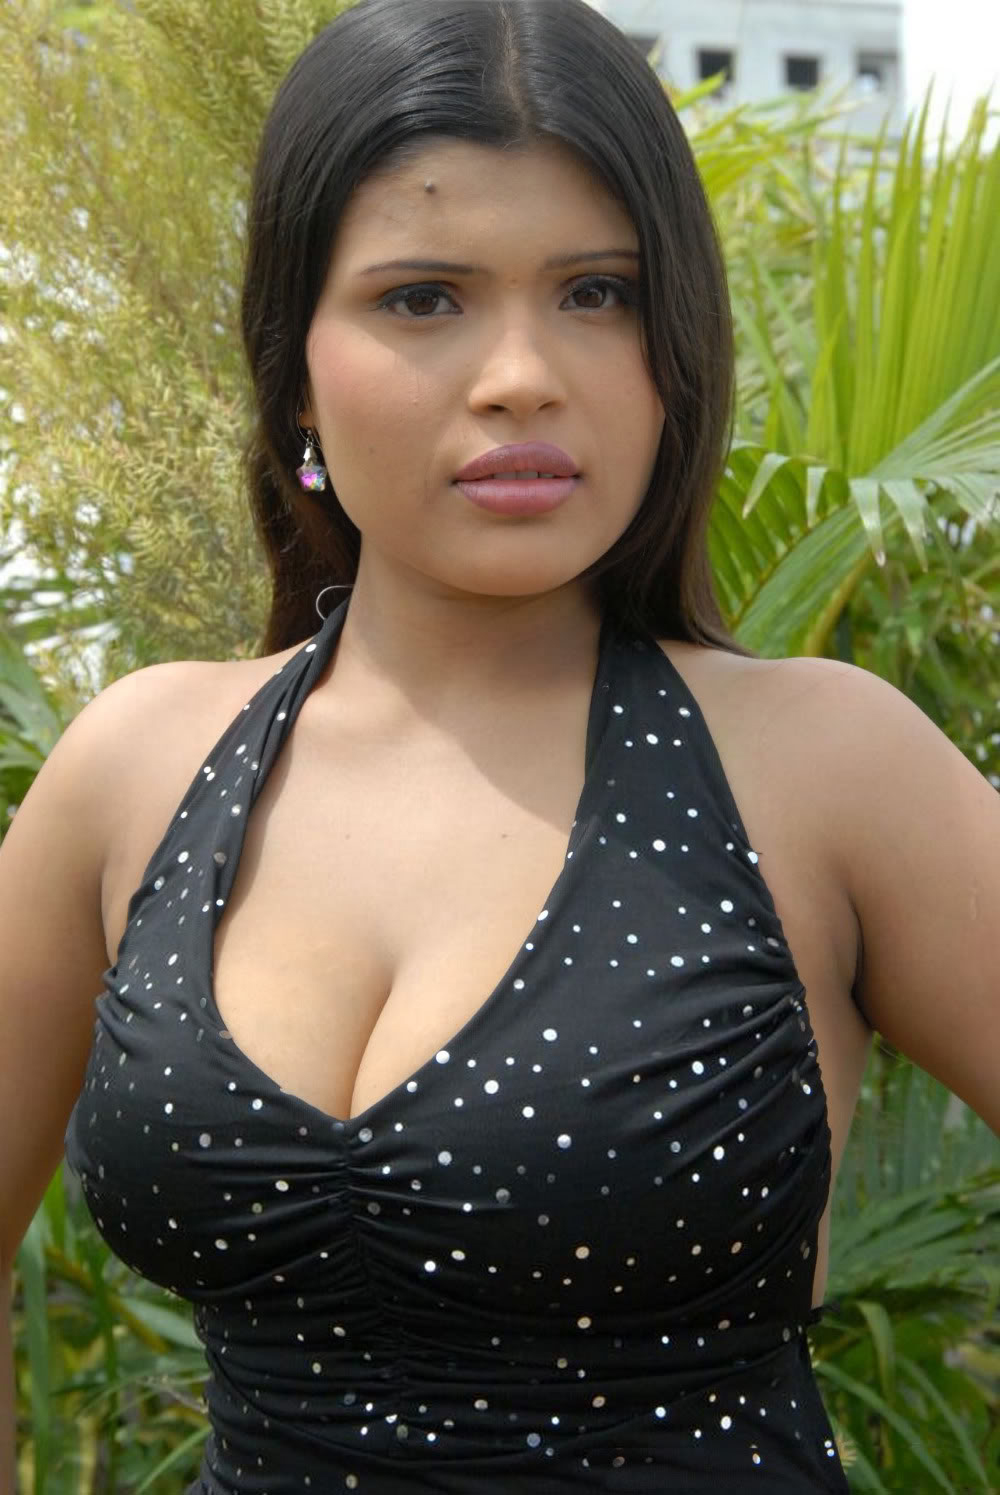 Indian Aunty Show sexy cleavage show photos'. If you are unable to